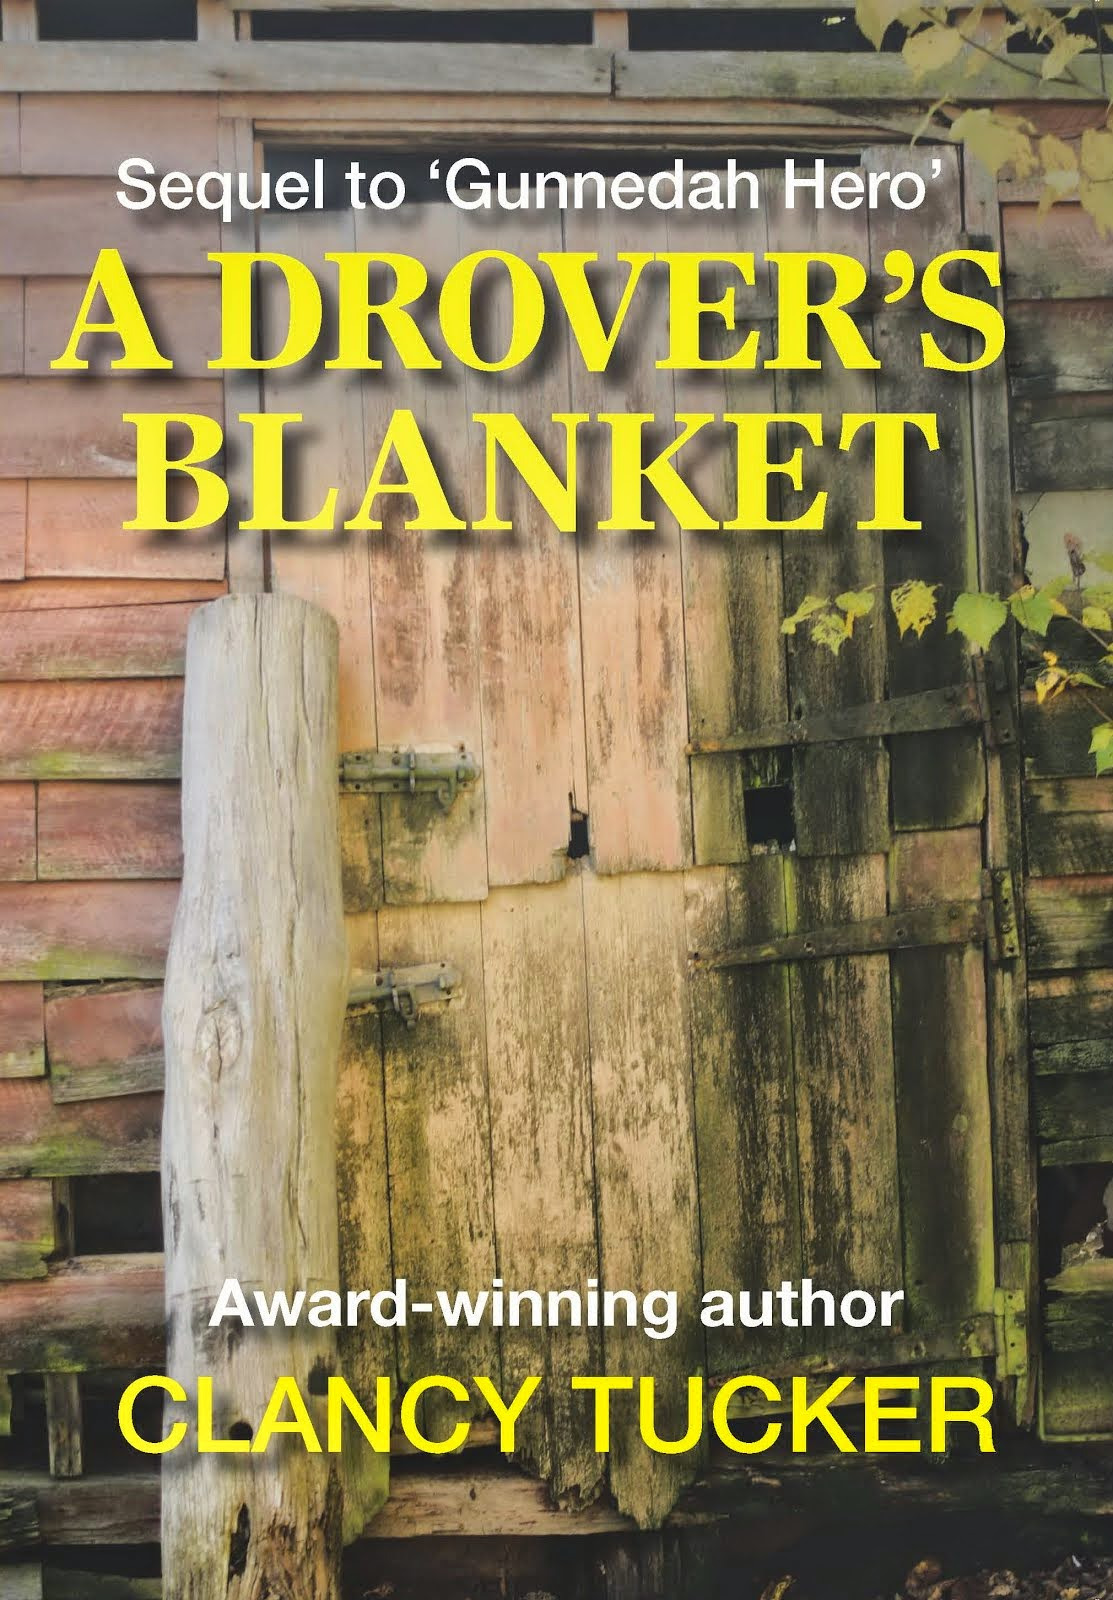 'A DROVER'S BLANKET' - FROM OUTSIDE AUSTRALIA